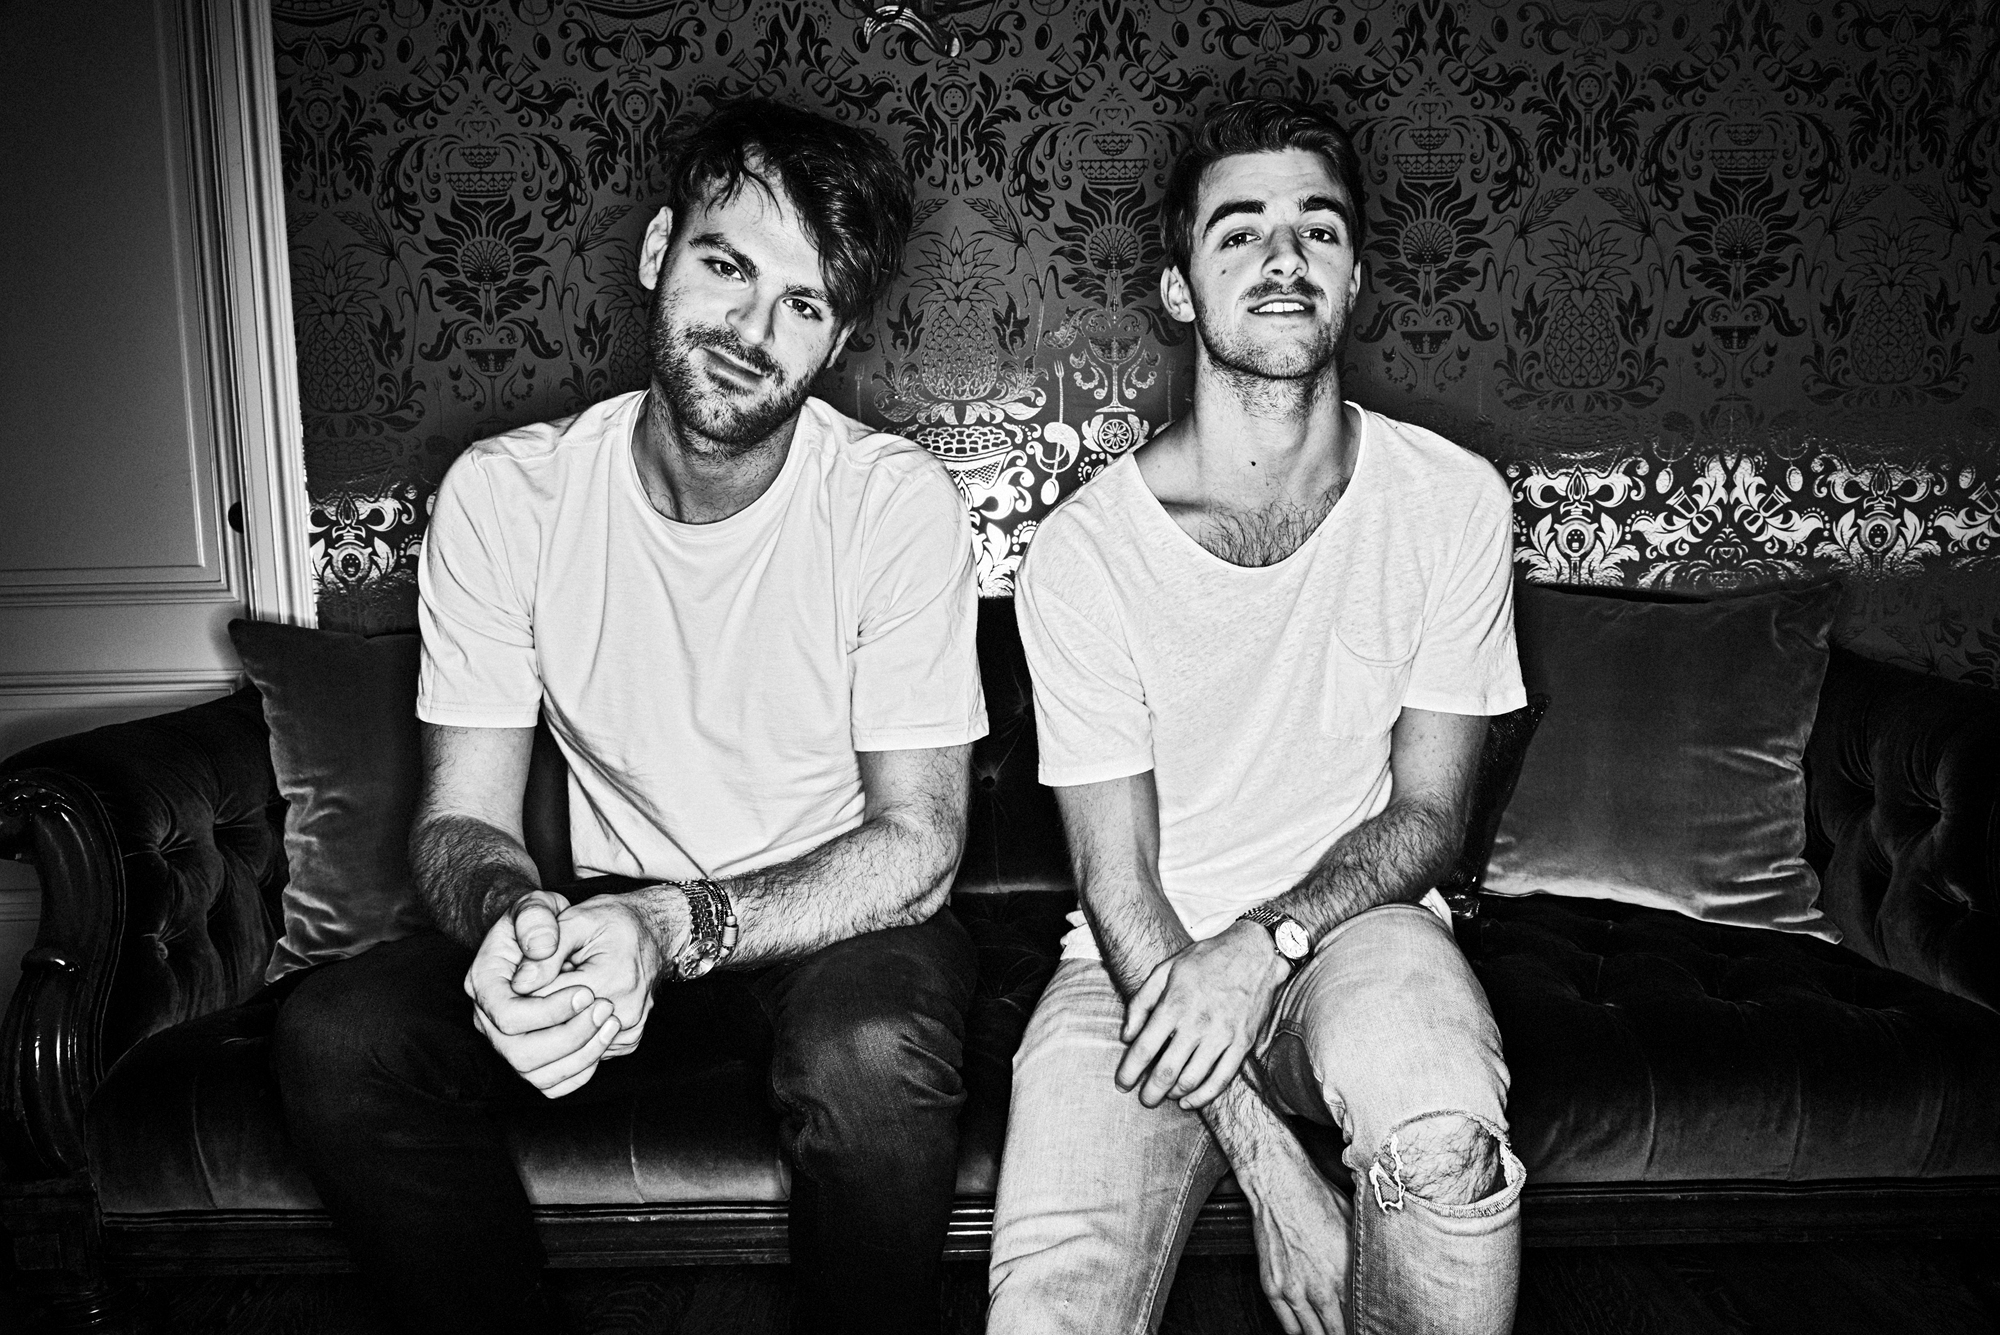 THE_CHAINSMOKERS_RAINER_HOSCH_0471